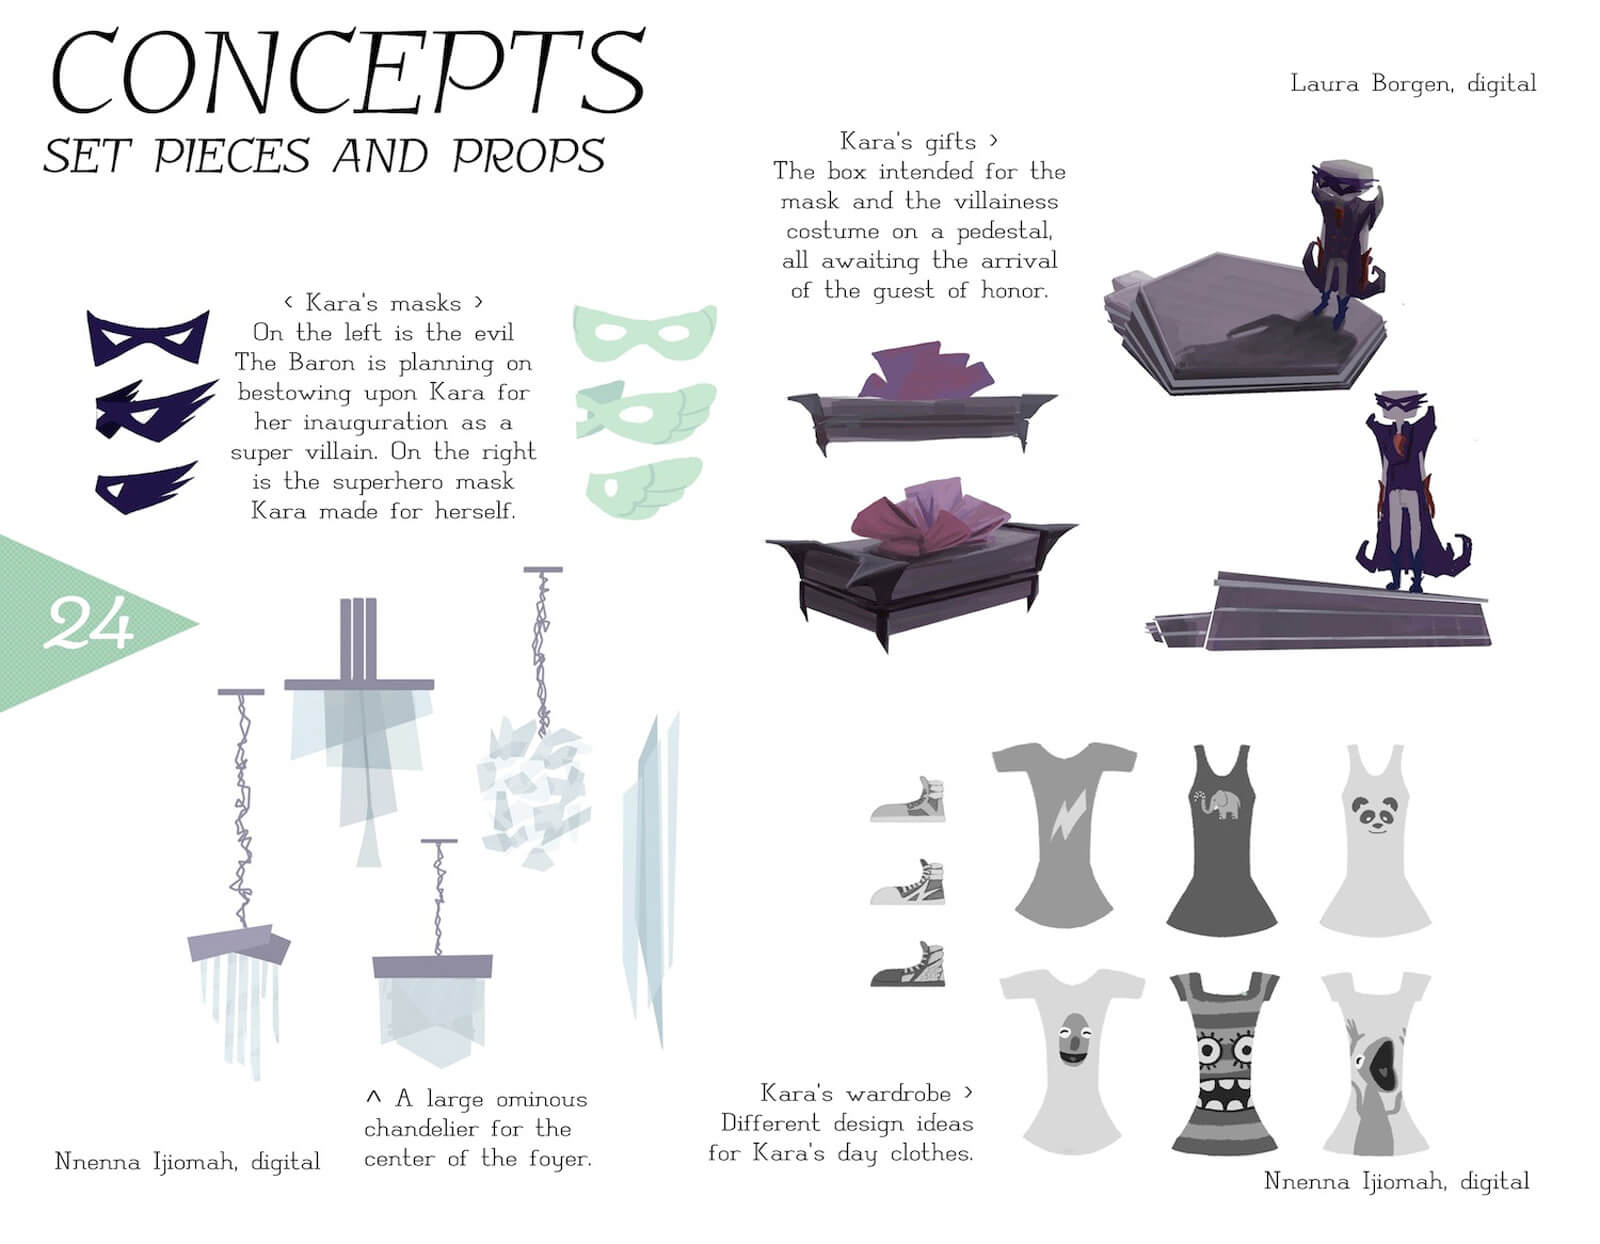 Concept art of props in the film Super Secret including face masks, gift boxes, costumes, and chandeliers